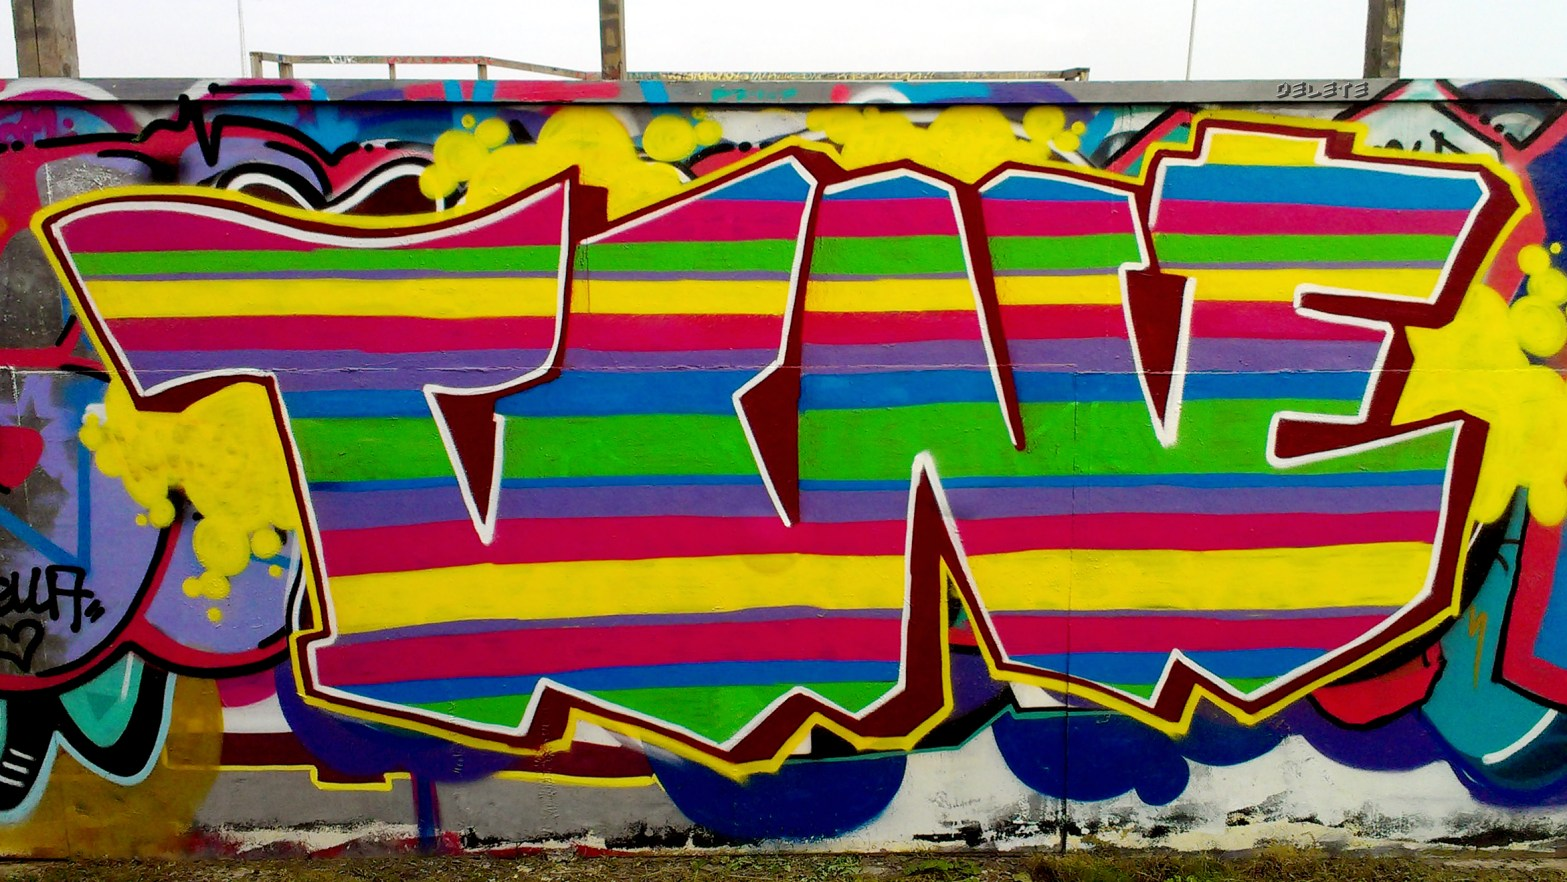 Tone by delete08 on Flickr